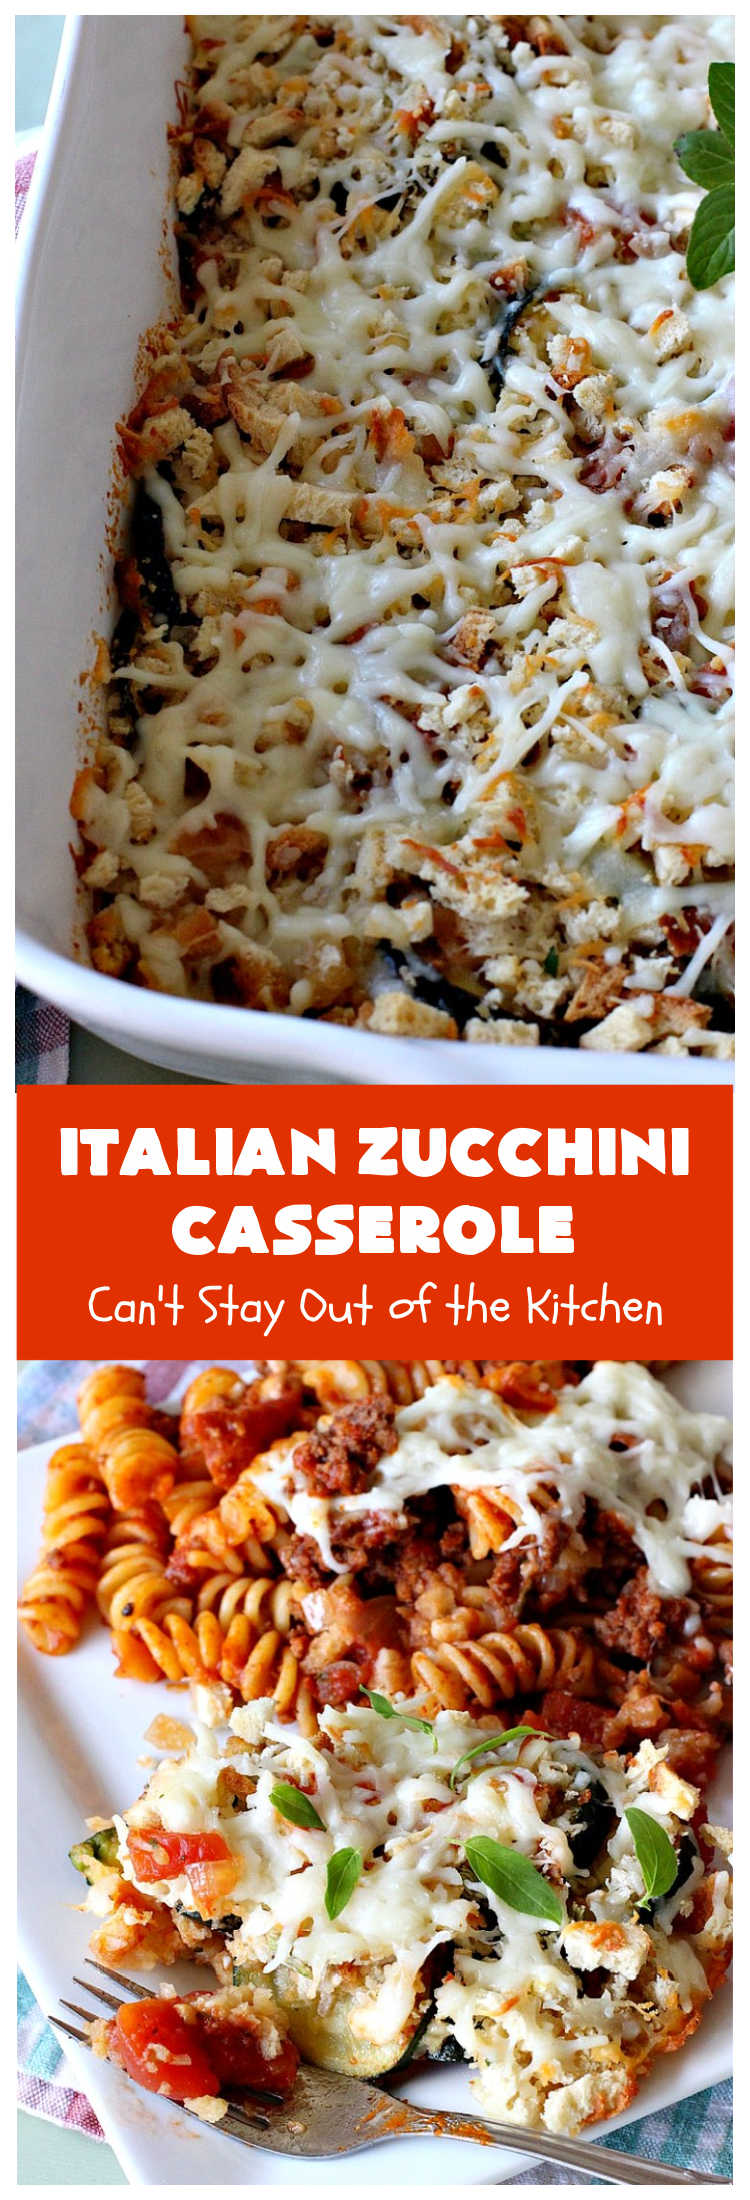 Italian Zucchini Casserole   Cant Stay Out of the Kitchen   this fantastic #casserole is perfect for any company or #holiday menu. It's filled with #zucchini & #tomatoes, topped with #StuffingMix & loaded with #Parmesan & #Mozzarella cheeses. Everyone will want seconds. #Italian #HolidaySideDish #ZucchiniCasserole #ItalianZucchiniCasserole #GooseberryPatch